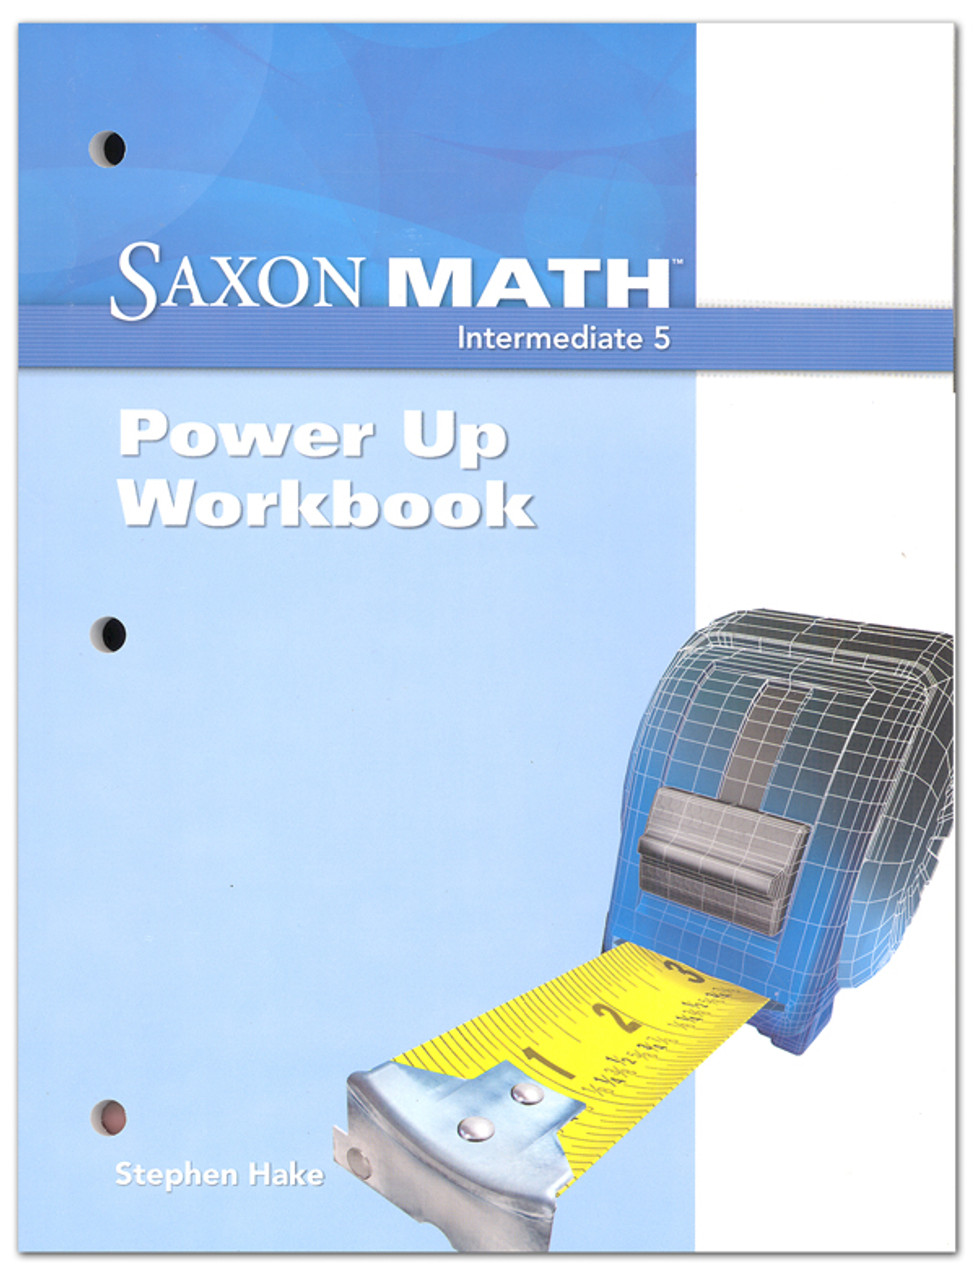 medium resolution of Saxon Math Grade 5 Intermediate Power Up Workbook - Classroom Resource  Center